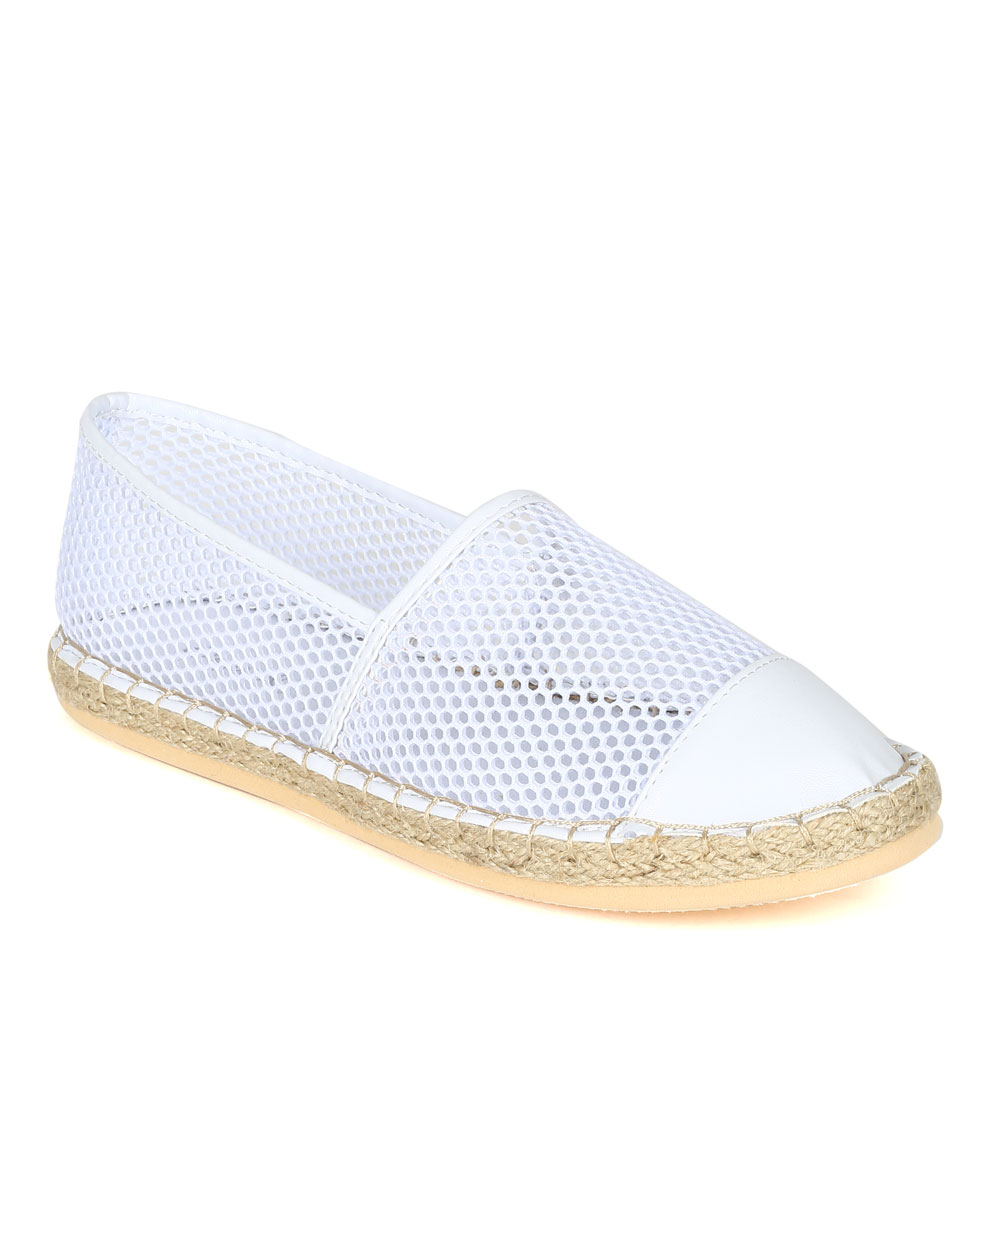 Qupid CA70 Women Mixed Media Espadrille Mesh Capped Toe Slip On Beach Loafer